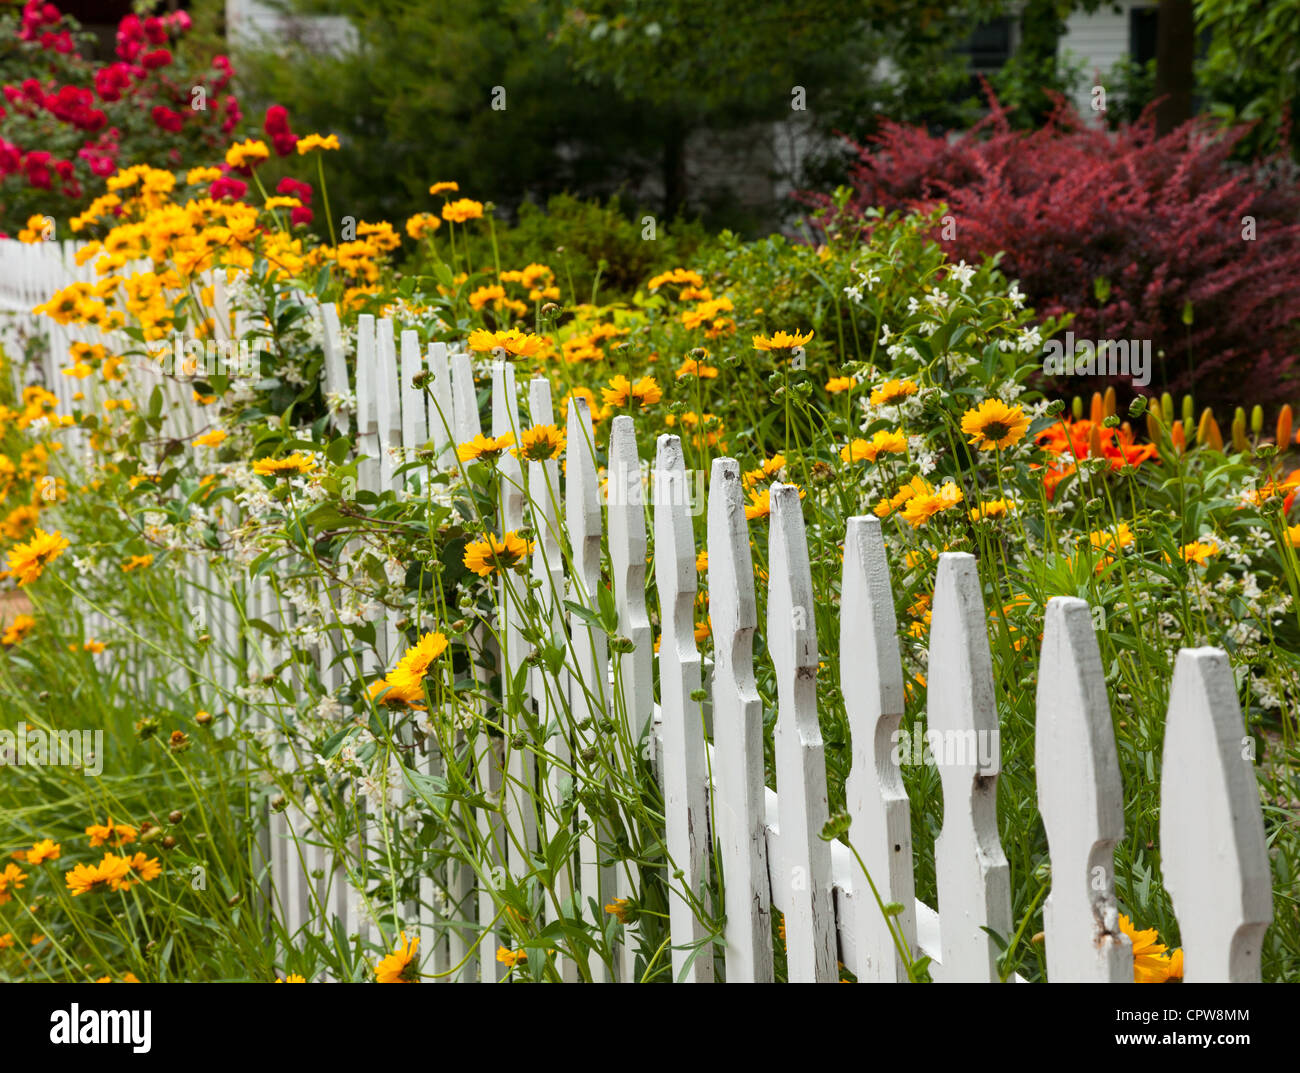 Stock Photo   White Picket Fence Around A Garden With Summer Flowers, USA